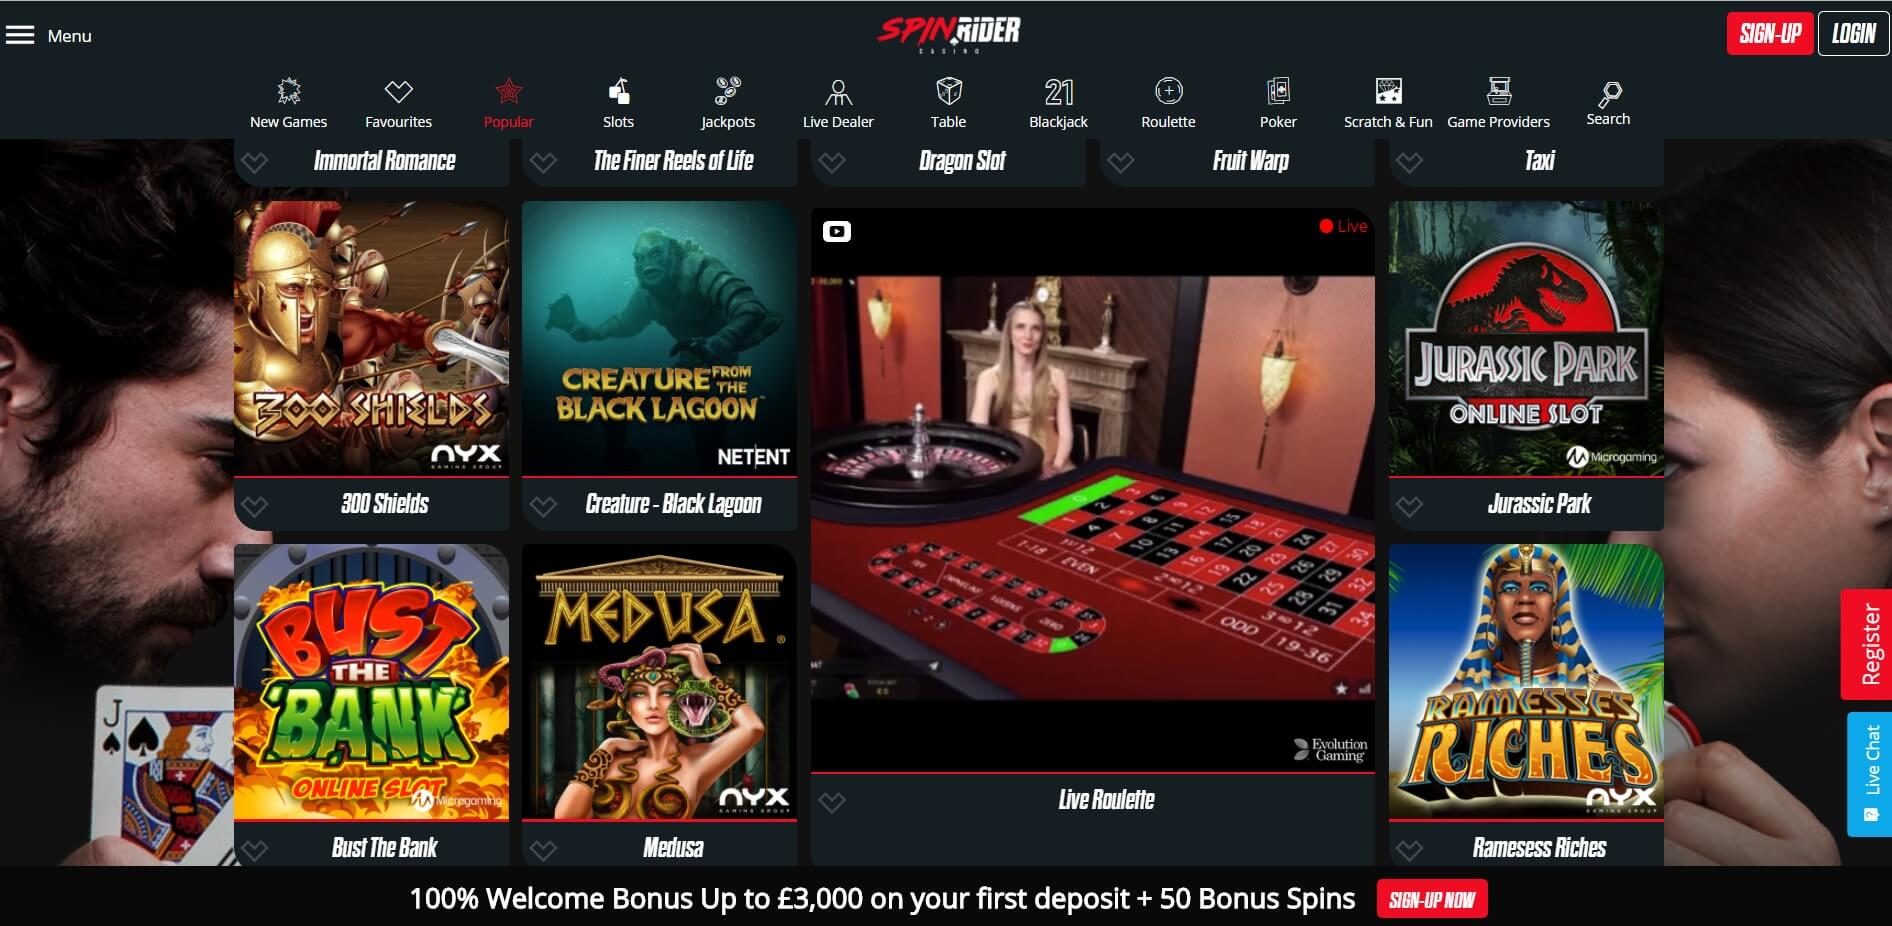 spinrider casino uk